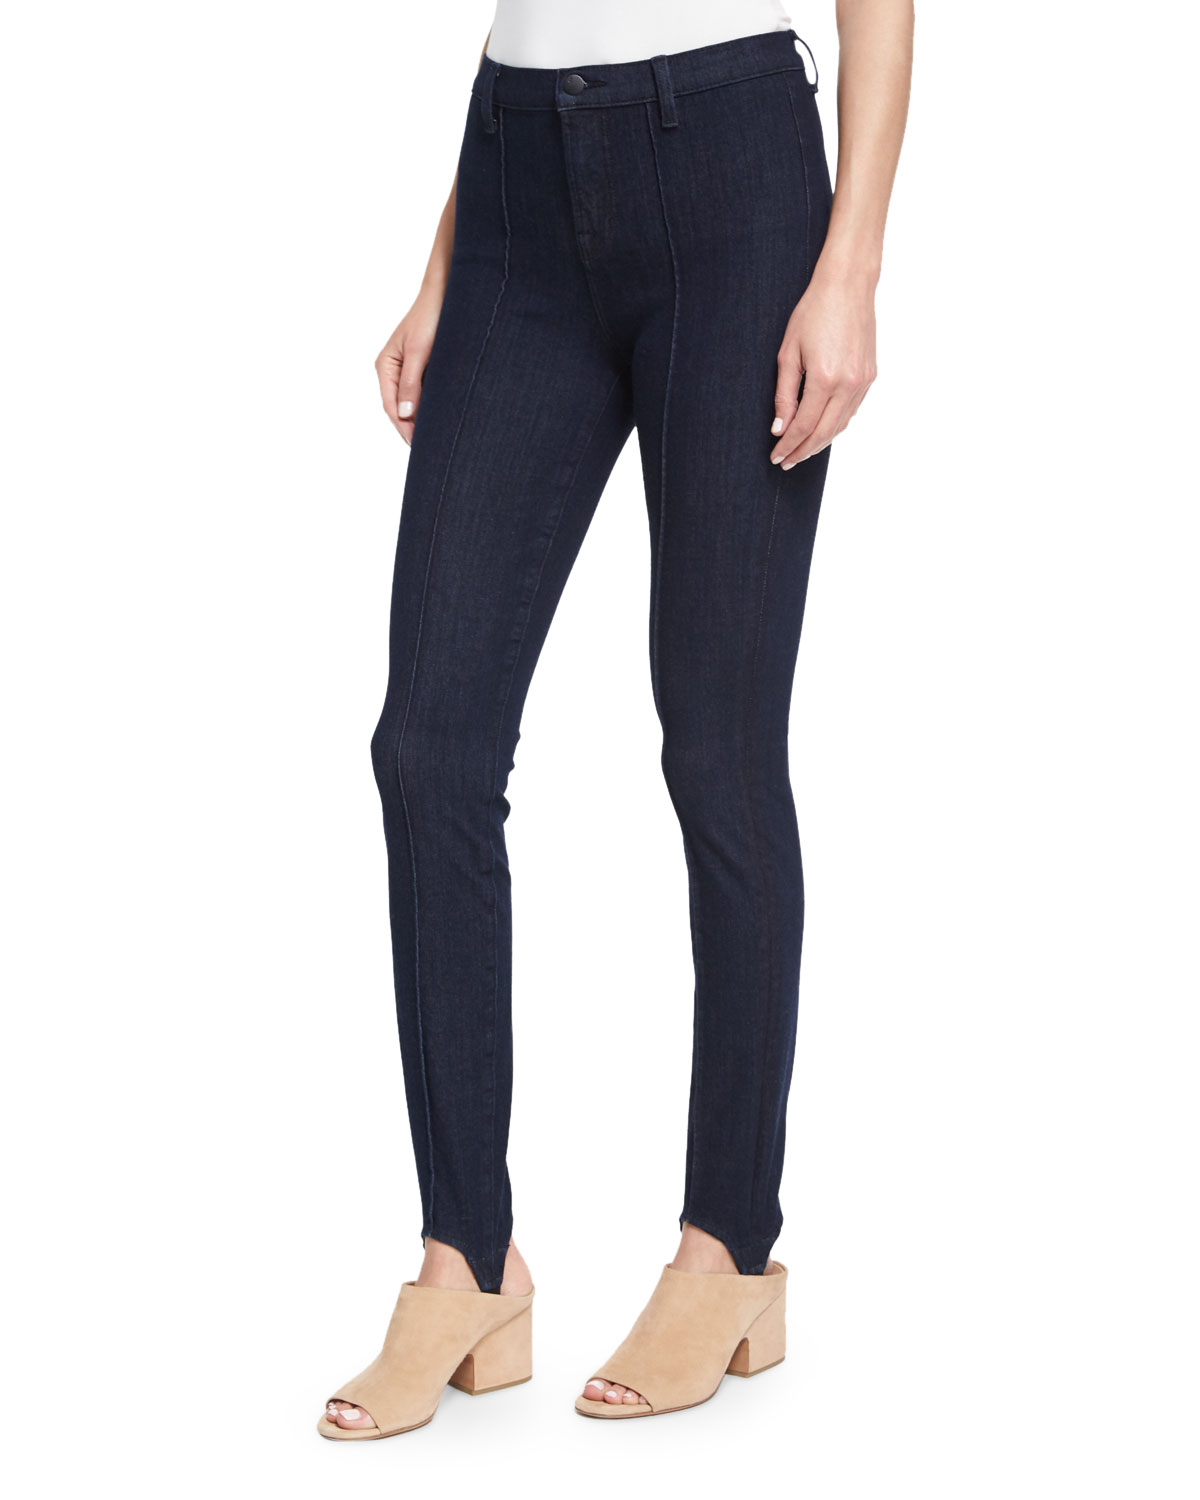 Maria Stirrup jeans J Brand DO2bXty